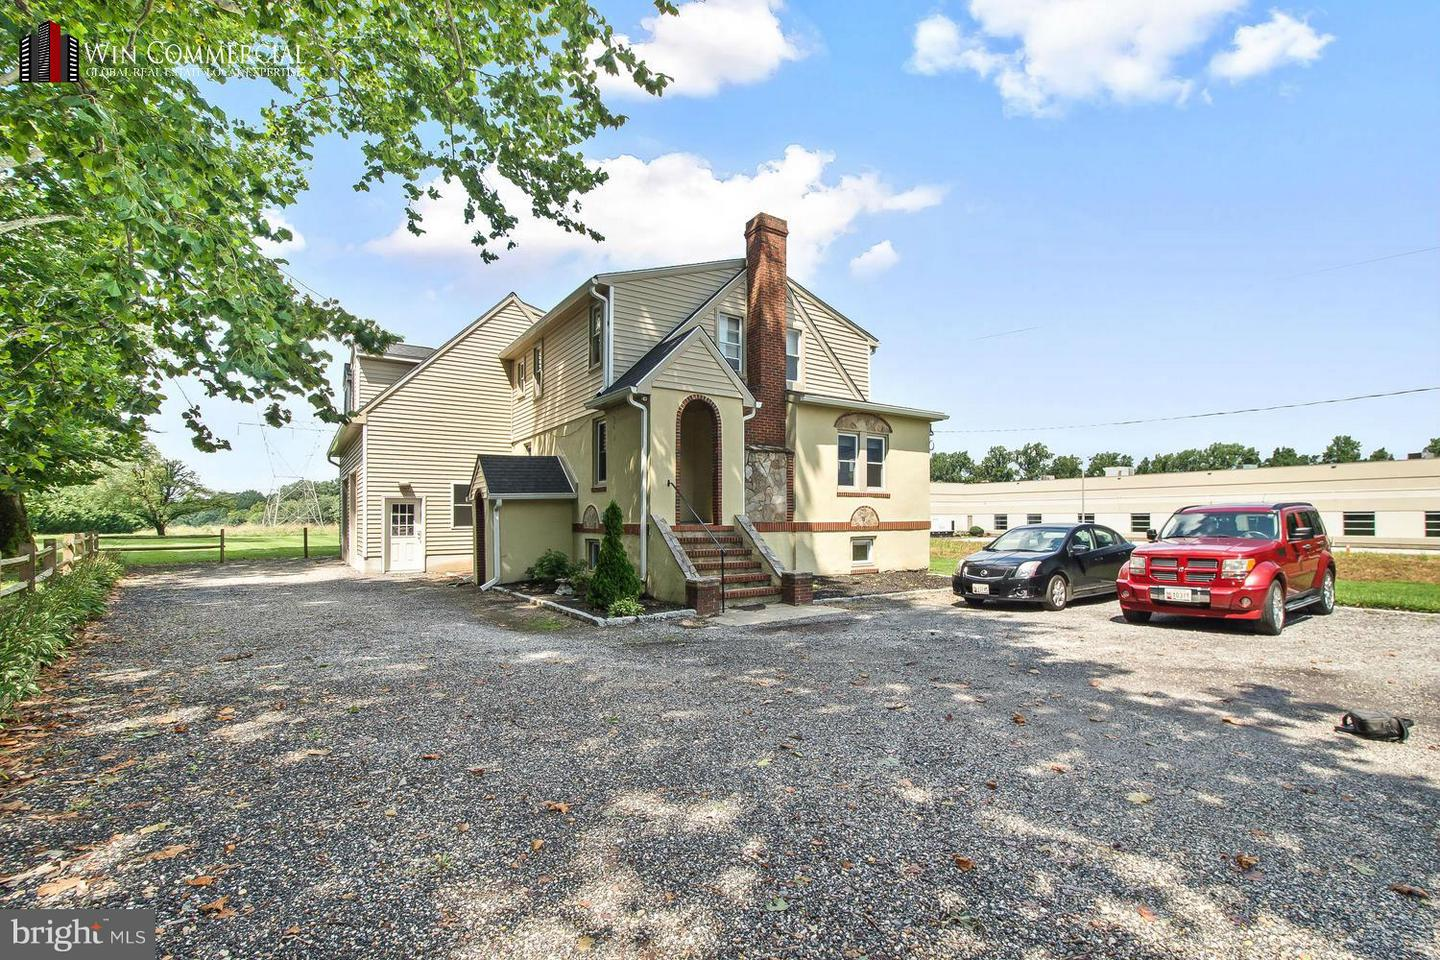 Commercial for Sale at 604 Hammonds Ferry Rd Linthicum, Maryland 21090 United States